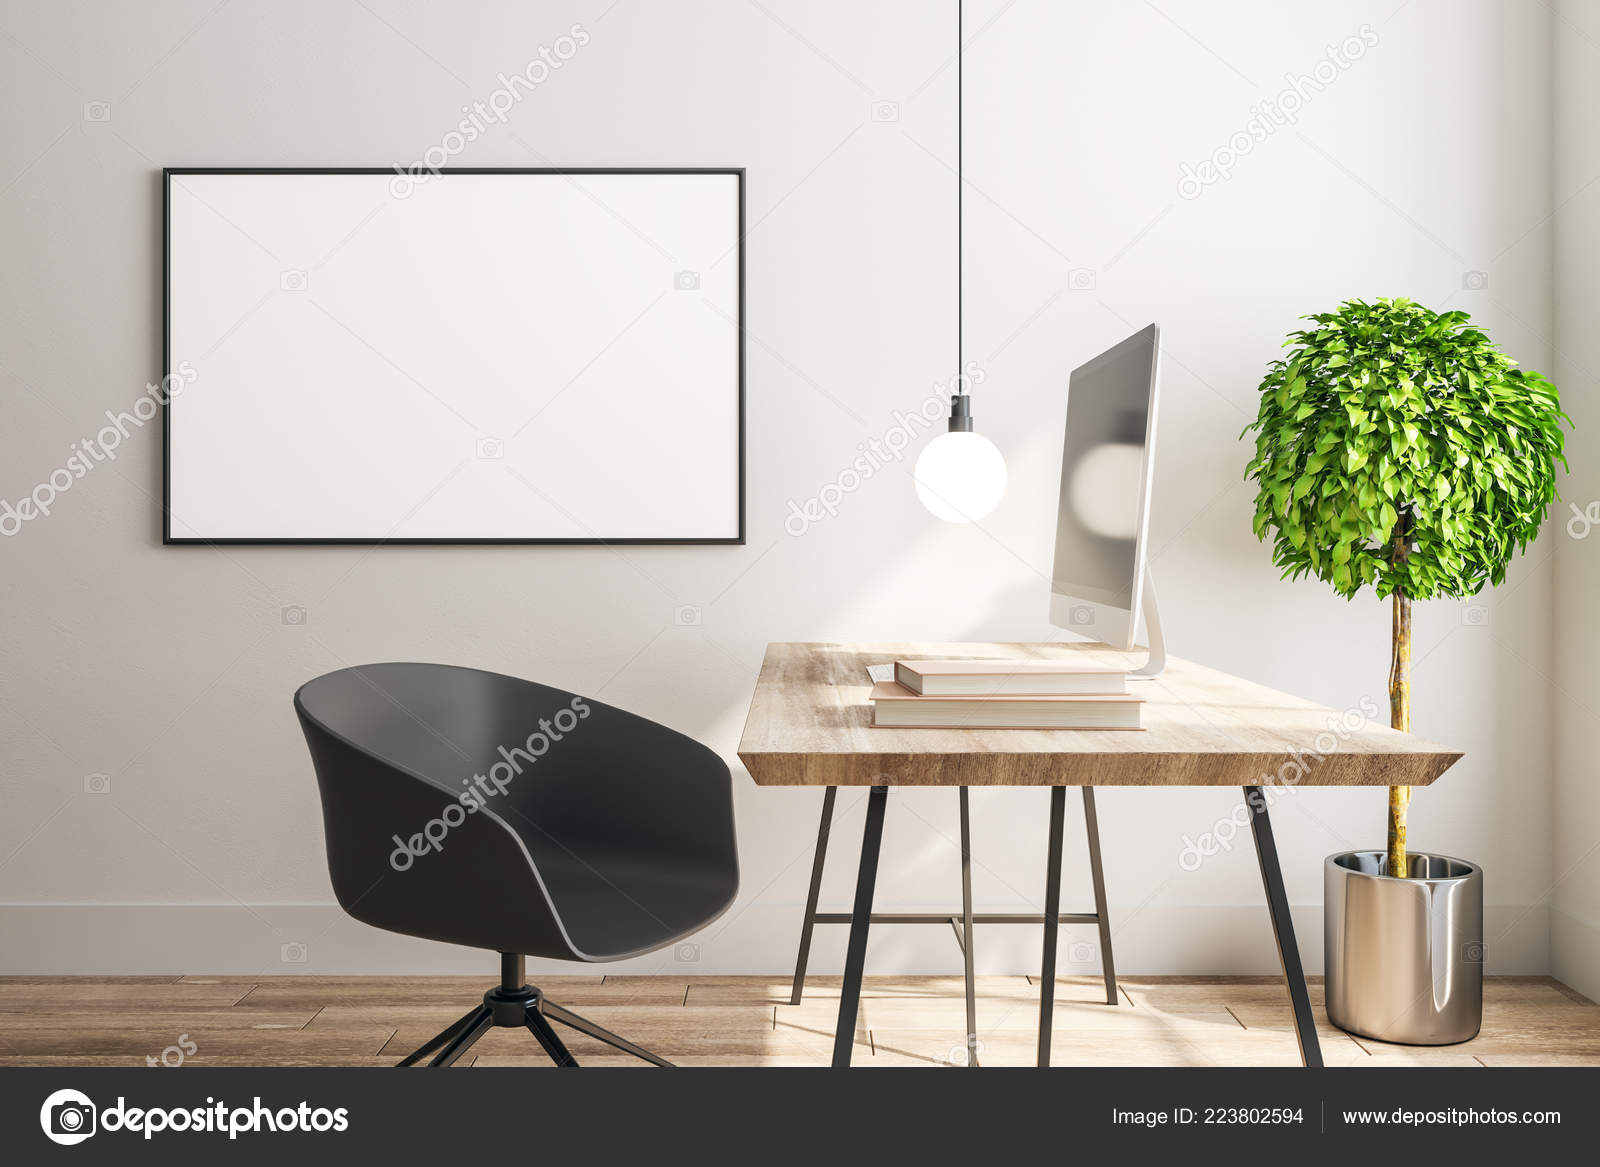 Modern Interior Designer Workplace Empty Poster Wall Mock Rendering